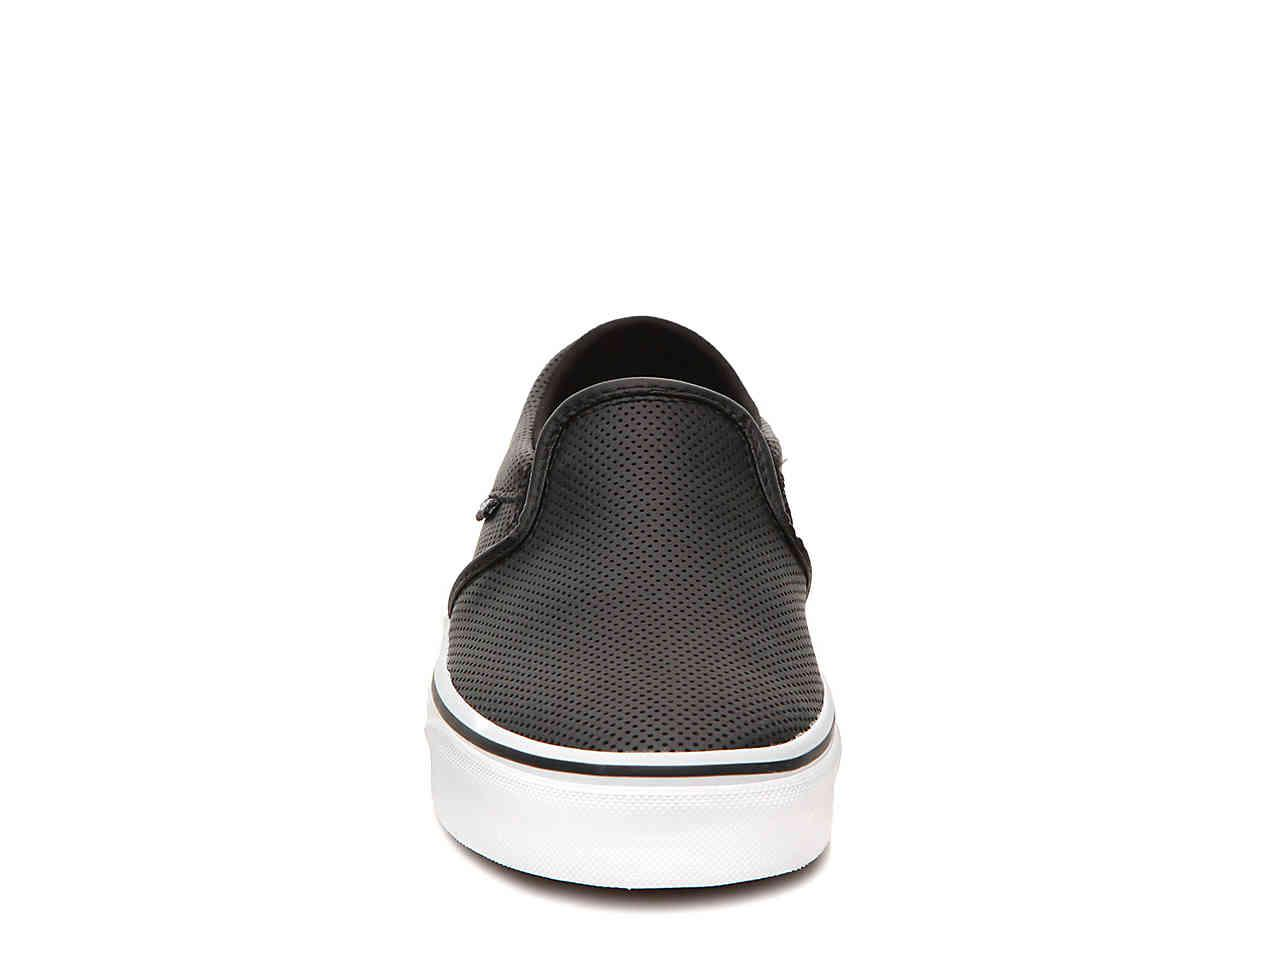 75f1a9c53e8 ... Asher Perforated Slip-on Sneaker - Lyst. View fullscreen